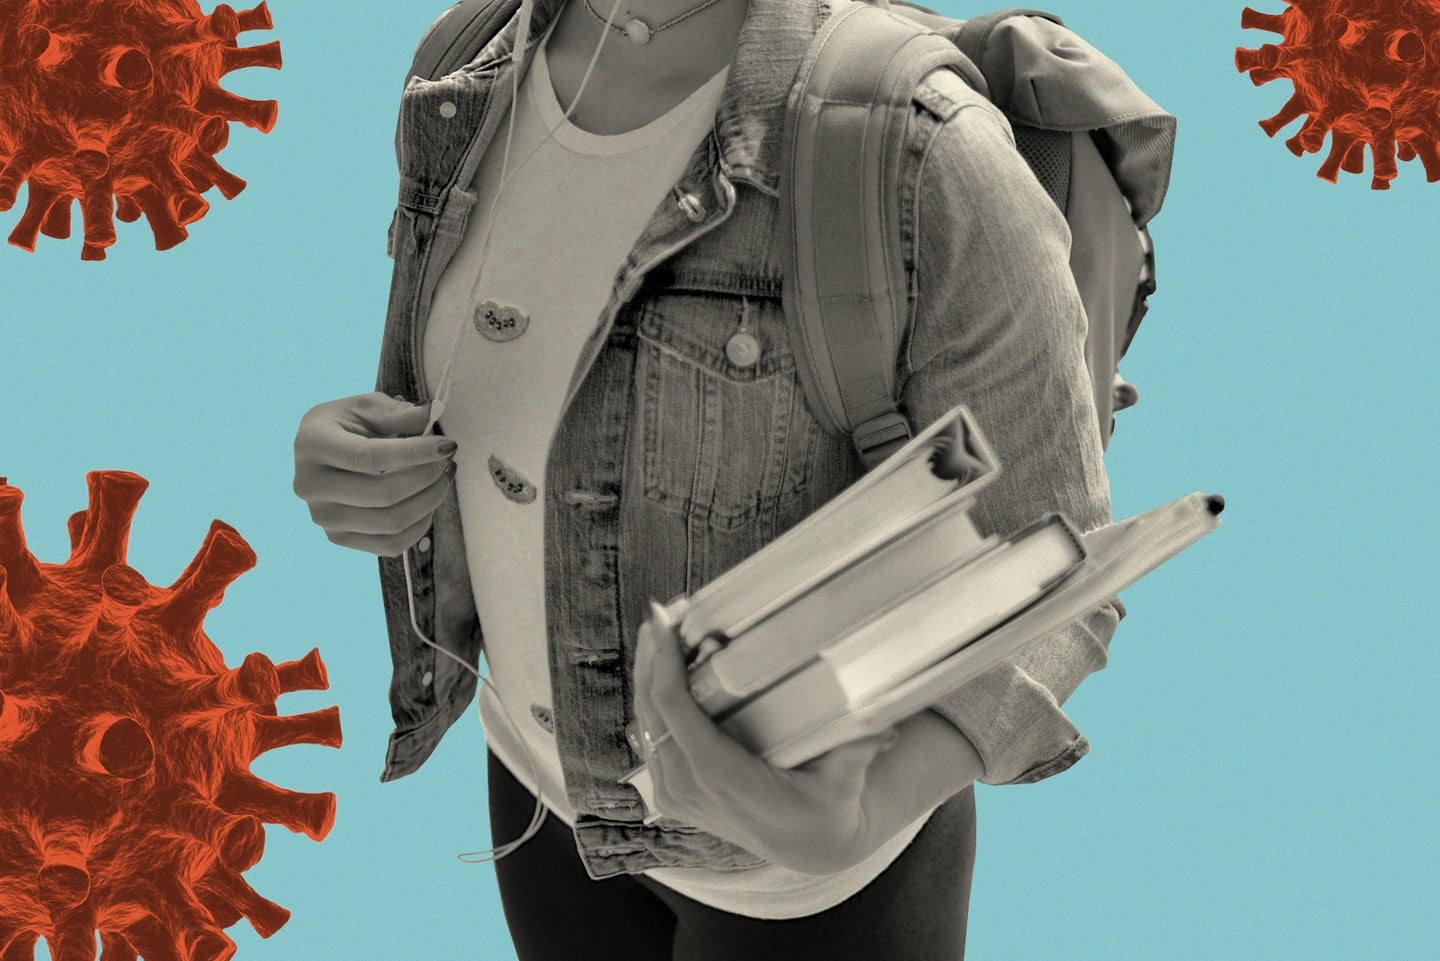 a person wearing a backpack and holding textbooks against a blue background with several red coronavirus illustrations